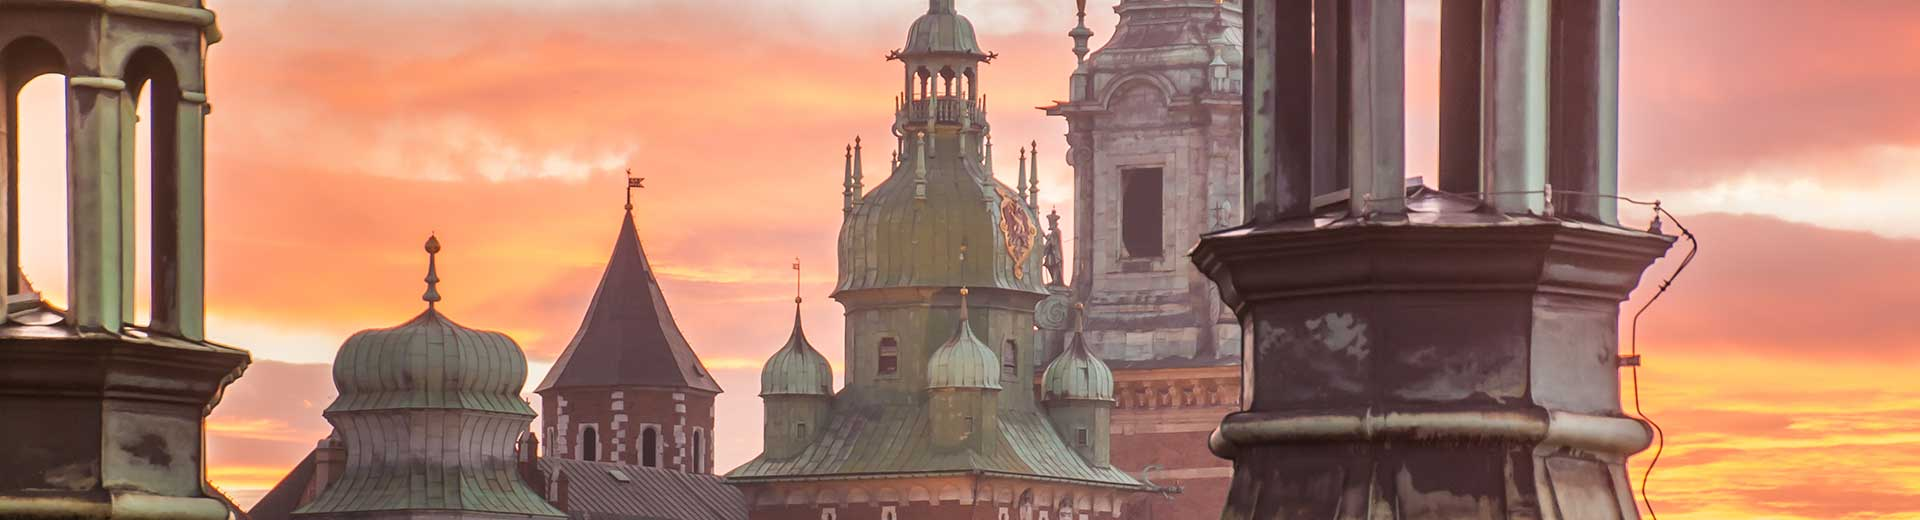 The spires of buildings in Krakow's Old Town at sunset